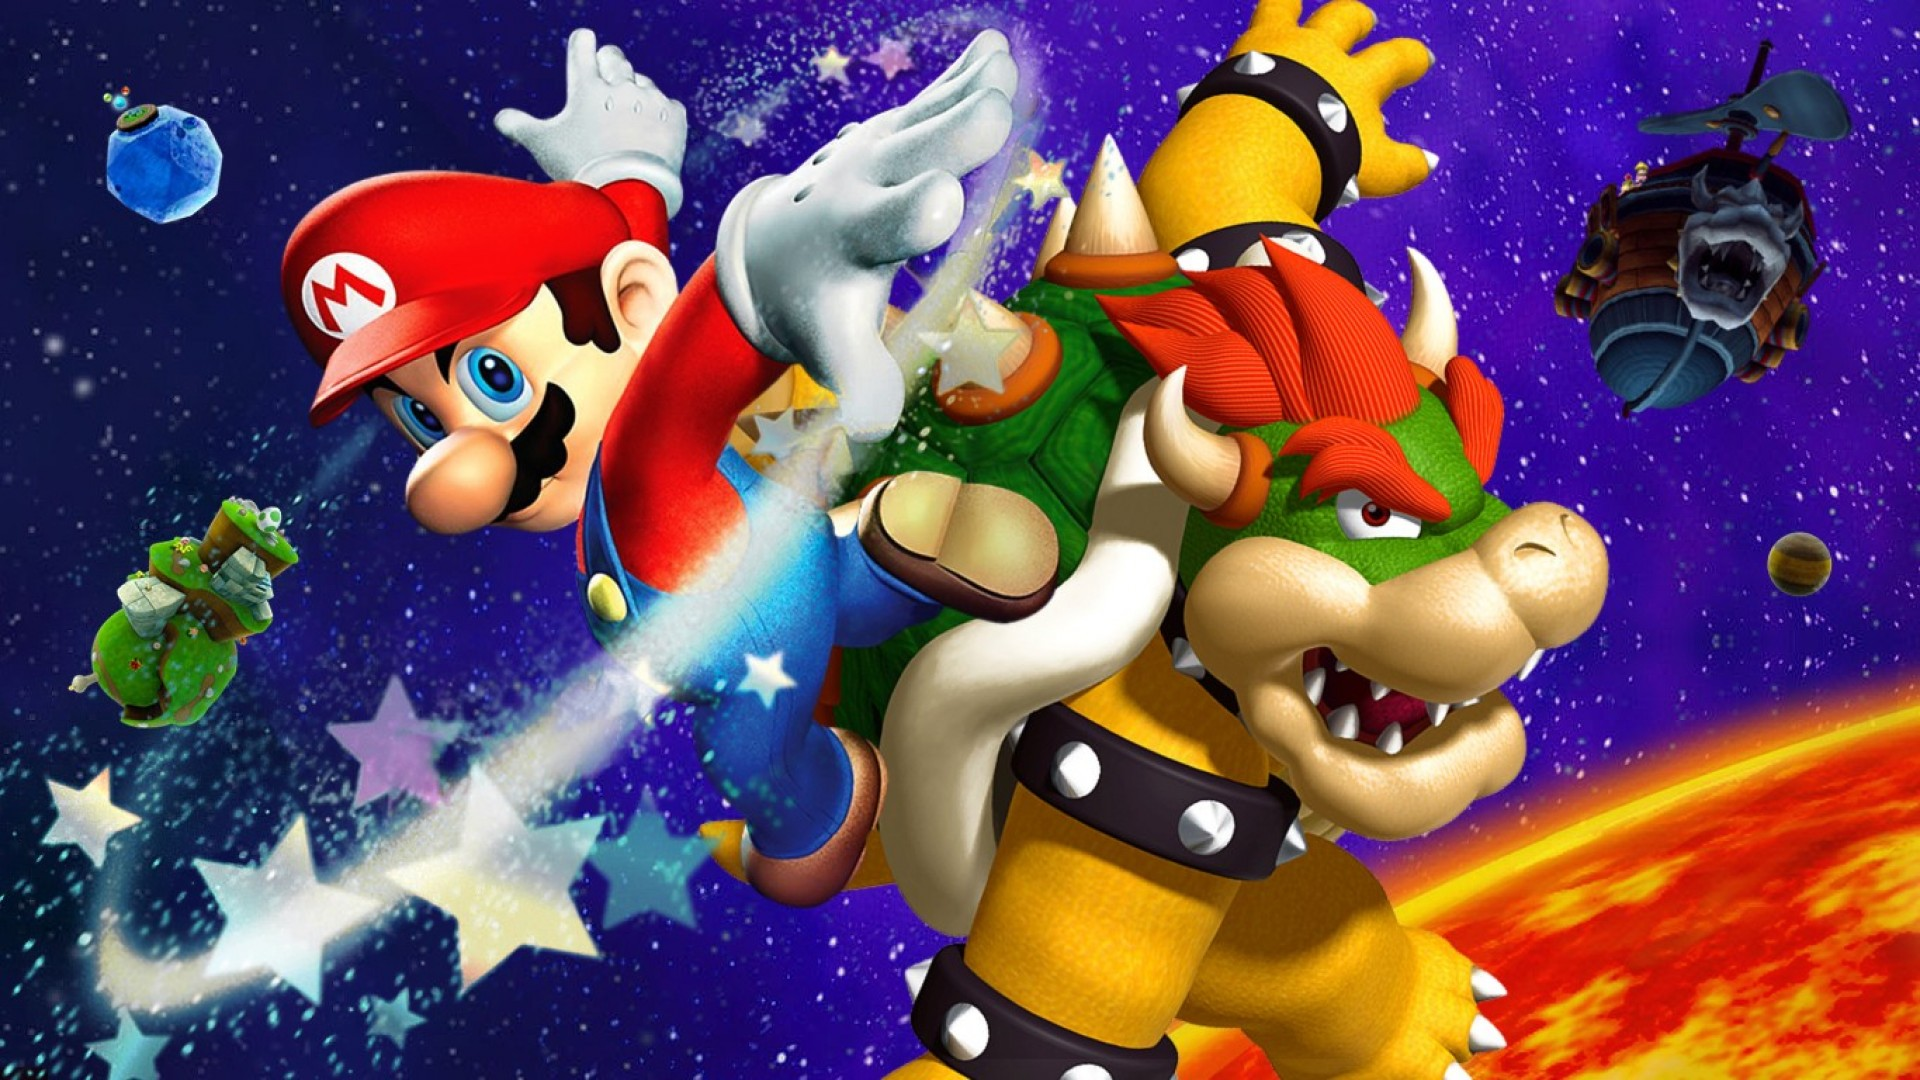 mario-wallpapers-hd-pictures-images | wallpaper.wiki